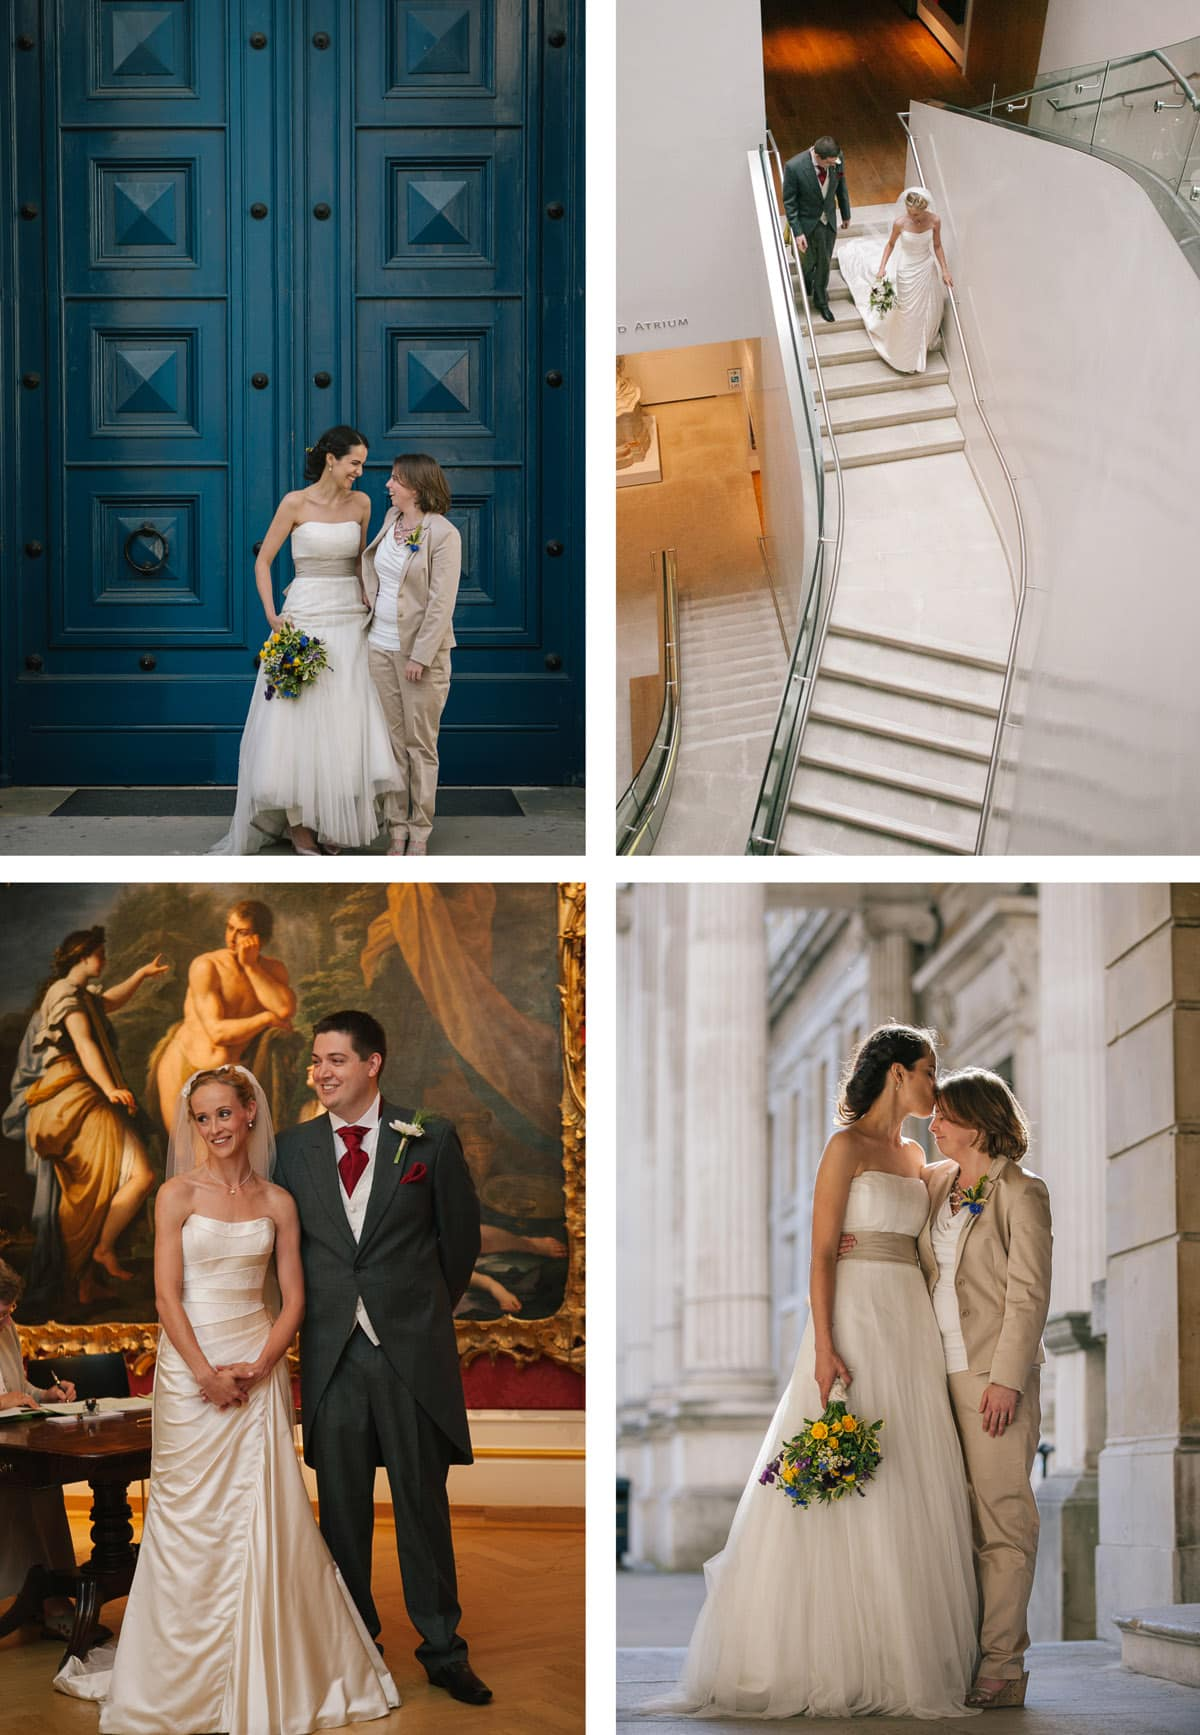 Collage of images of weddings at The Ashmolean Museum